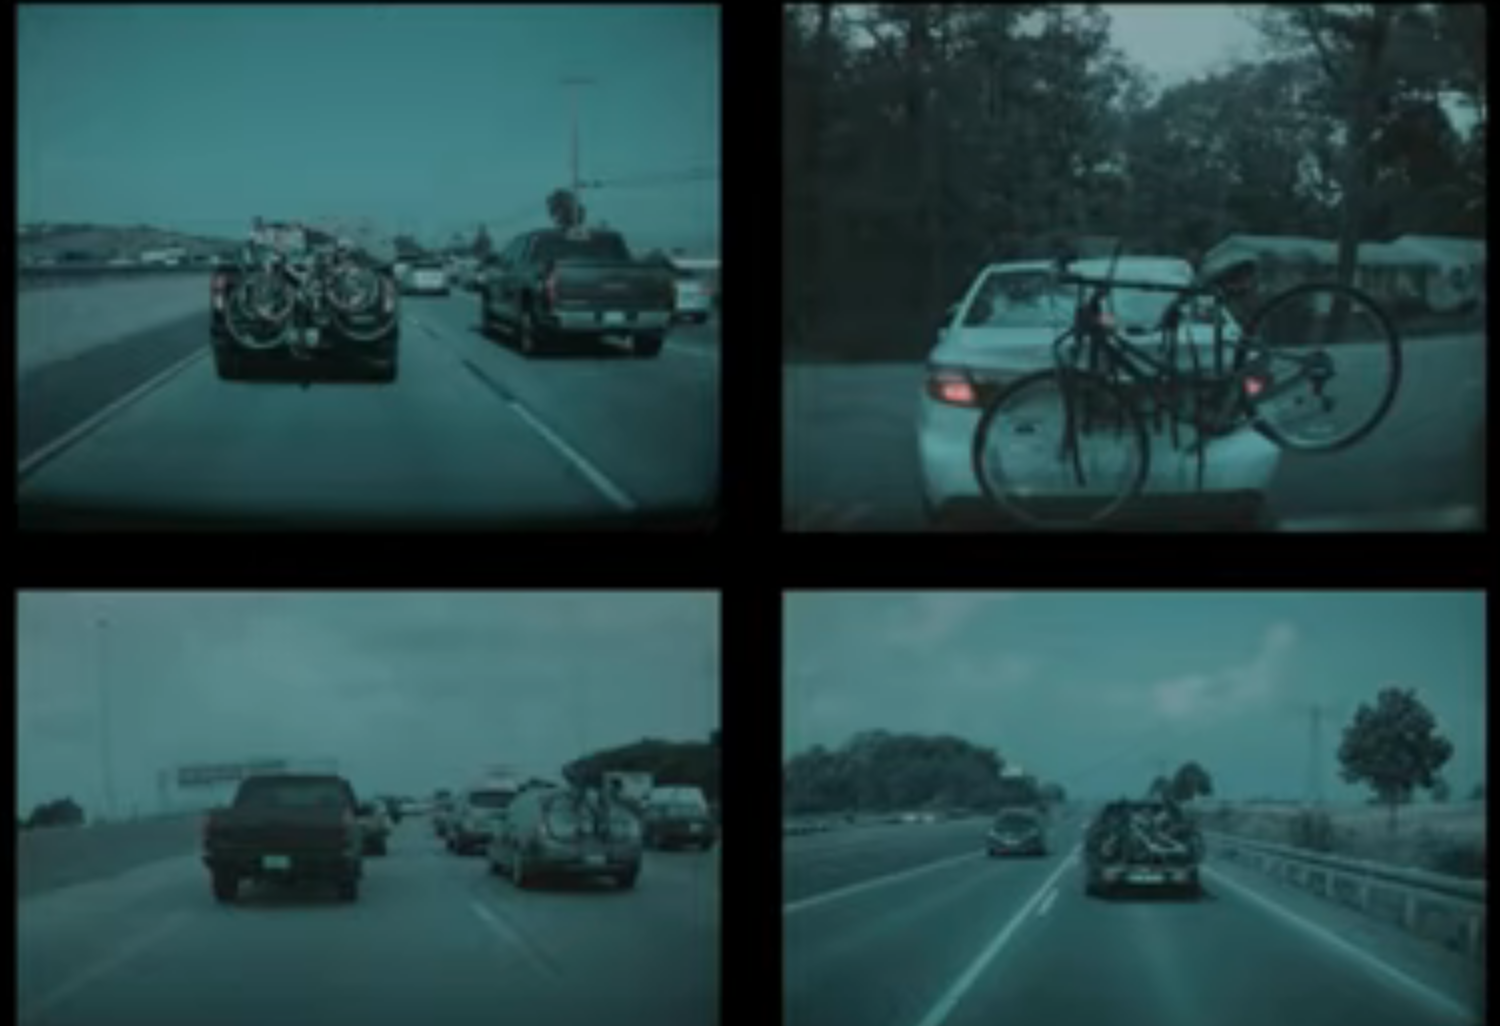 Examples of trucks attached to bikes seen by cars in Tesla's customer fleet.